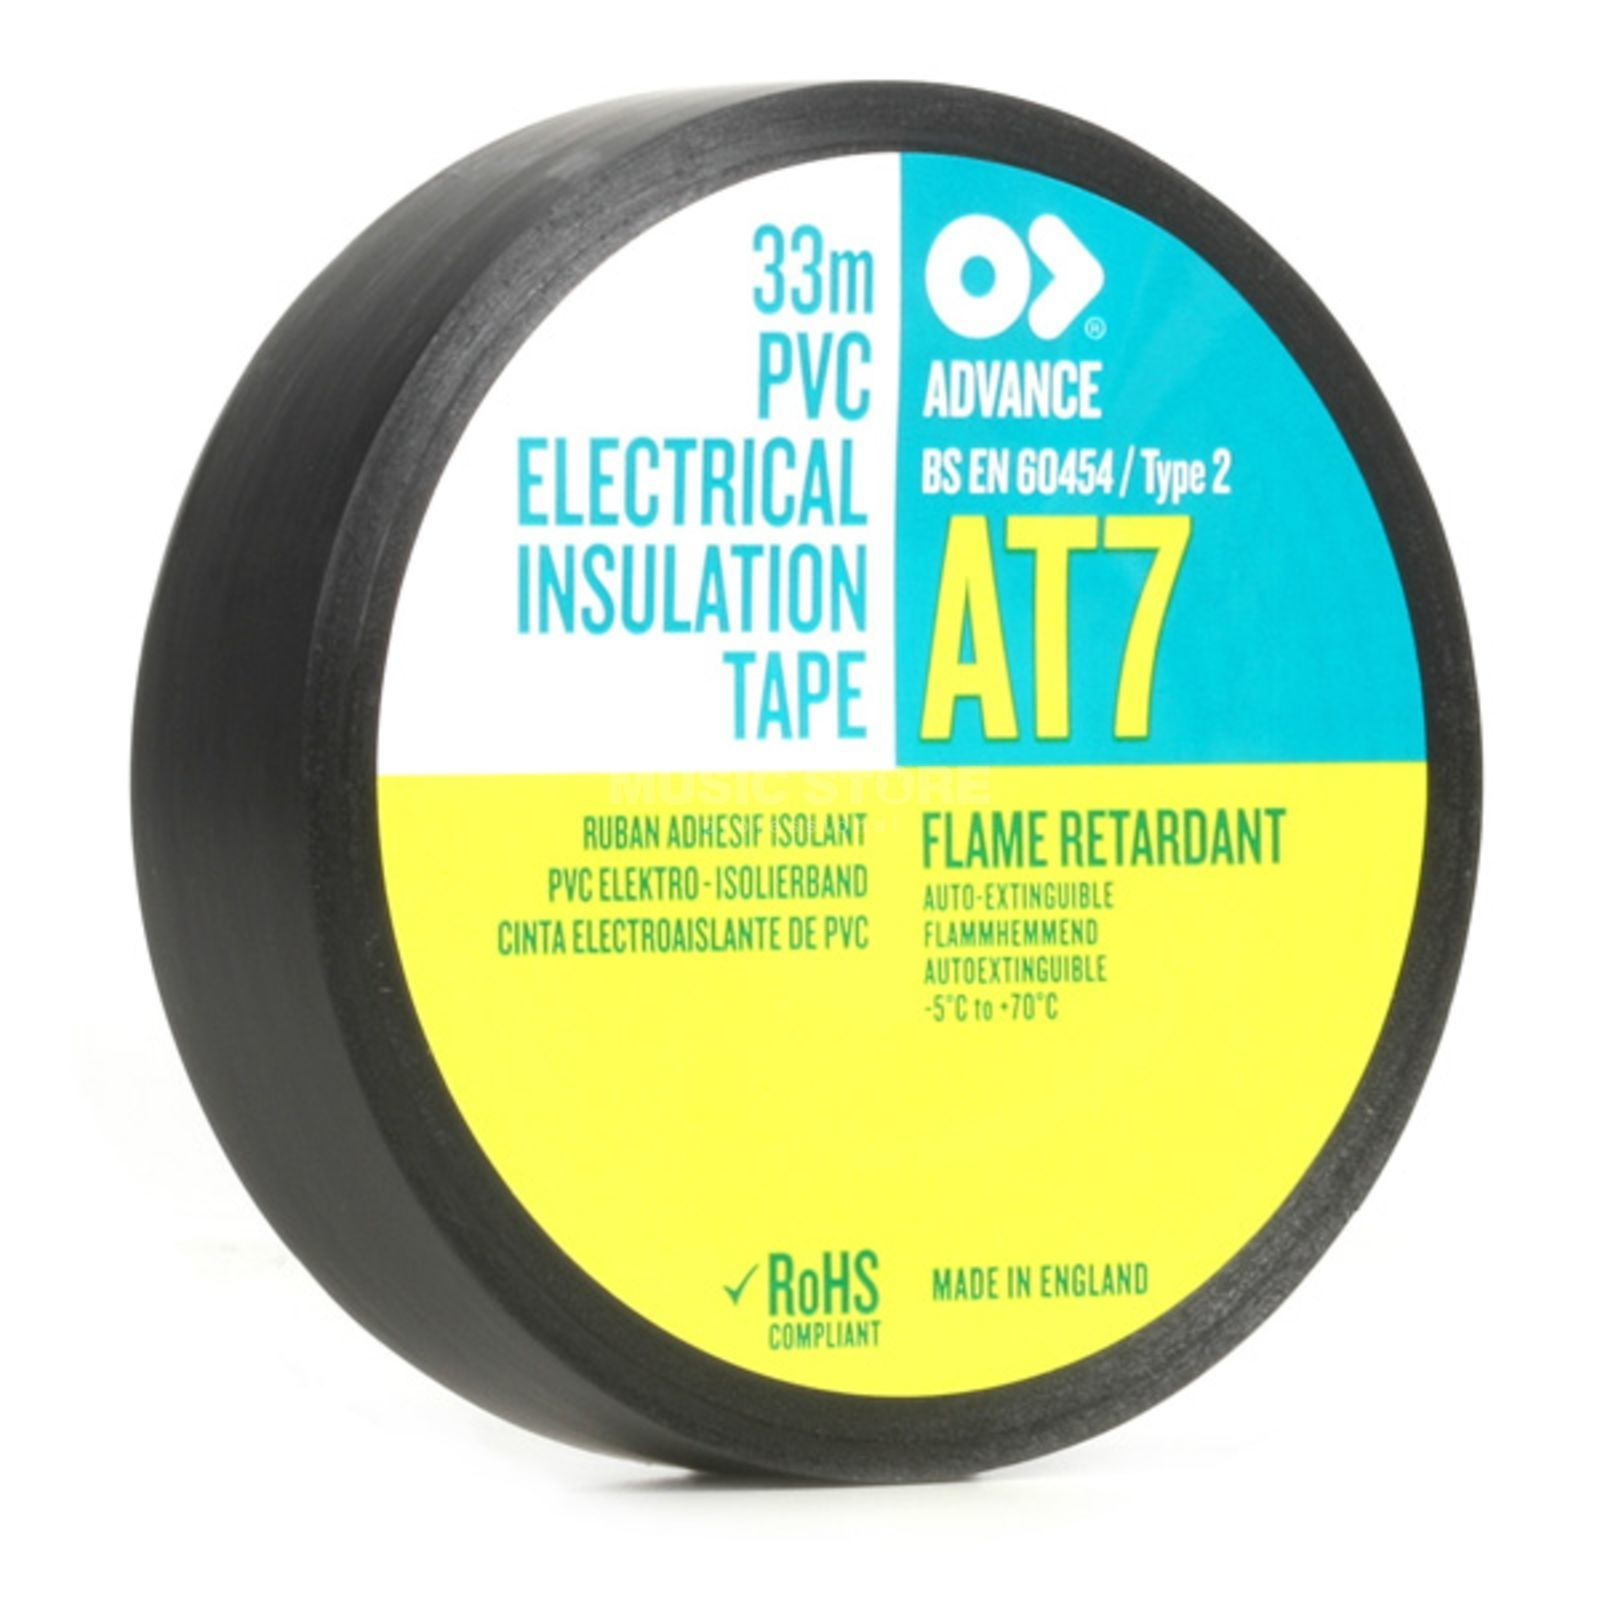 Advance AT7 PVC Insulation Tape, black 33m, 19mm Produktbillede